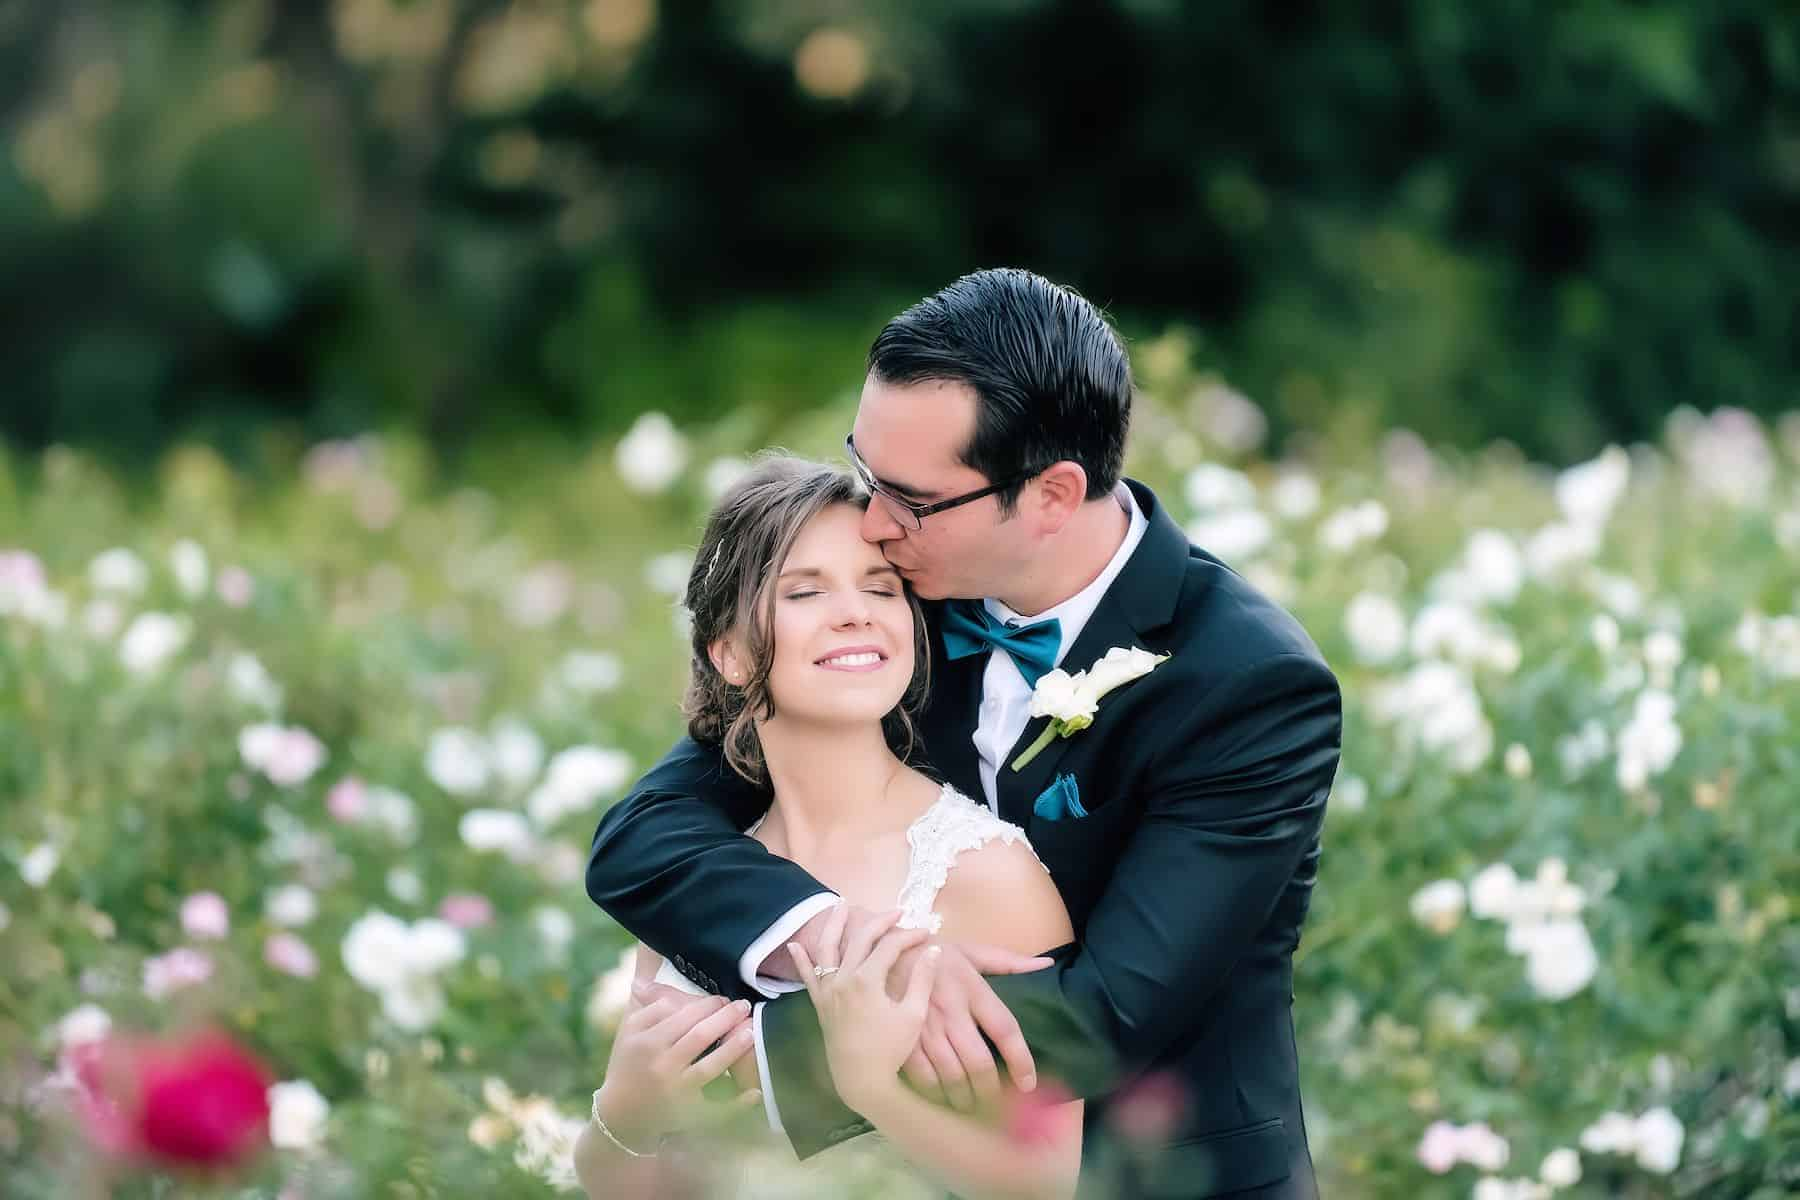 Couples Spotlight among the roses in Orlando Florida